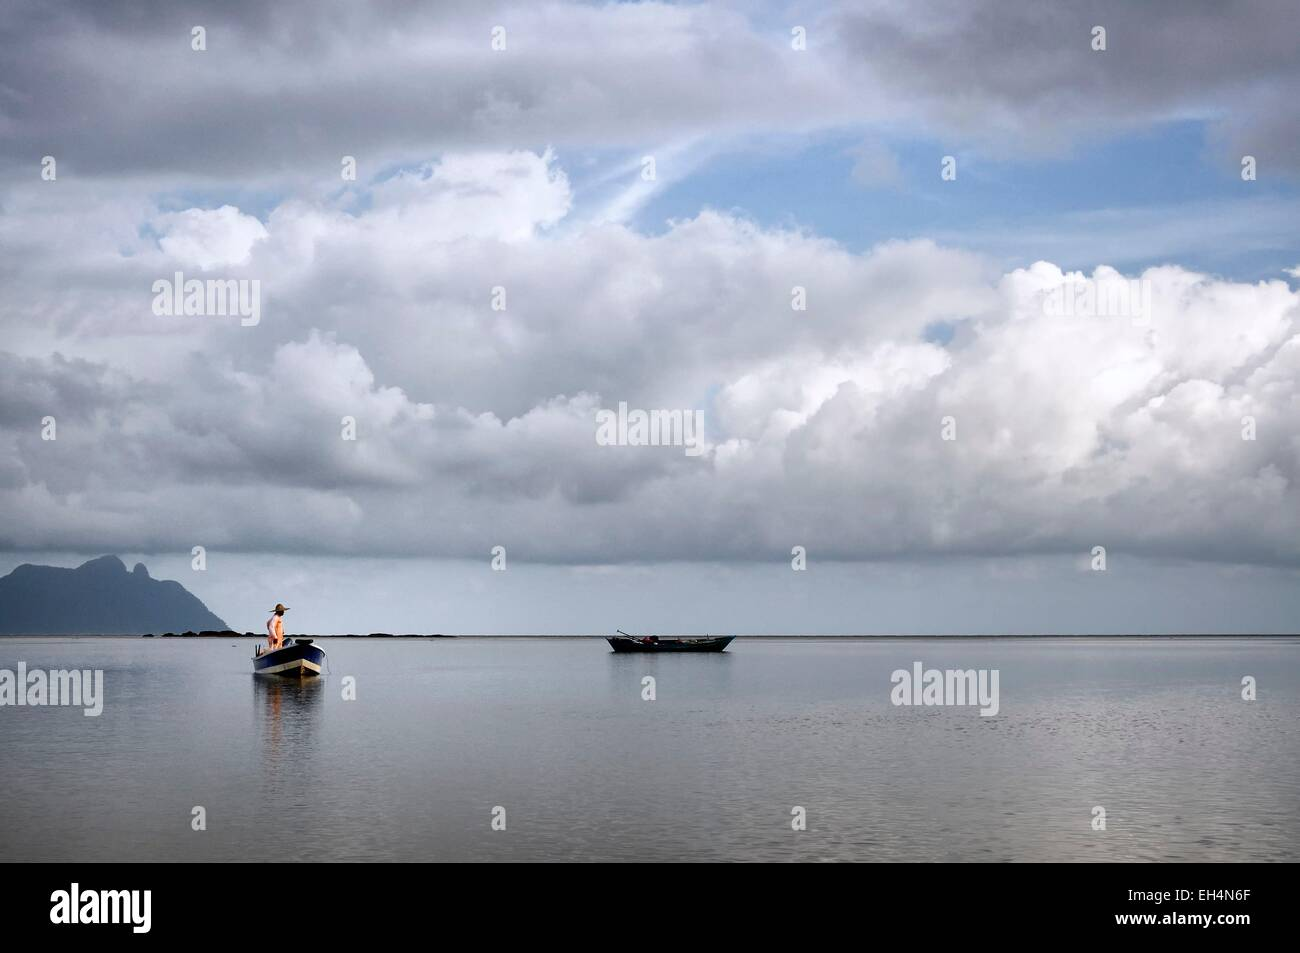 Malaysia, Borneo, Sarawak, Bako National Park, fisherman on a boat on the South China sea, cloudy sky - Stock Image